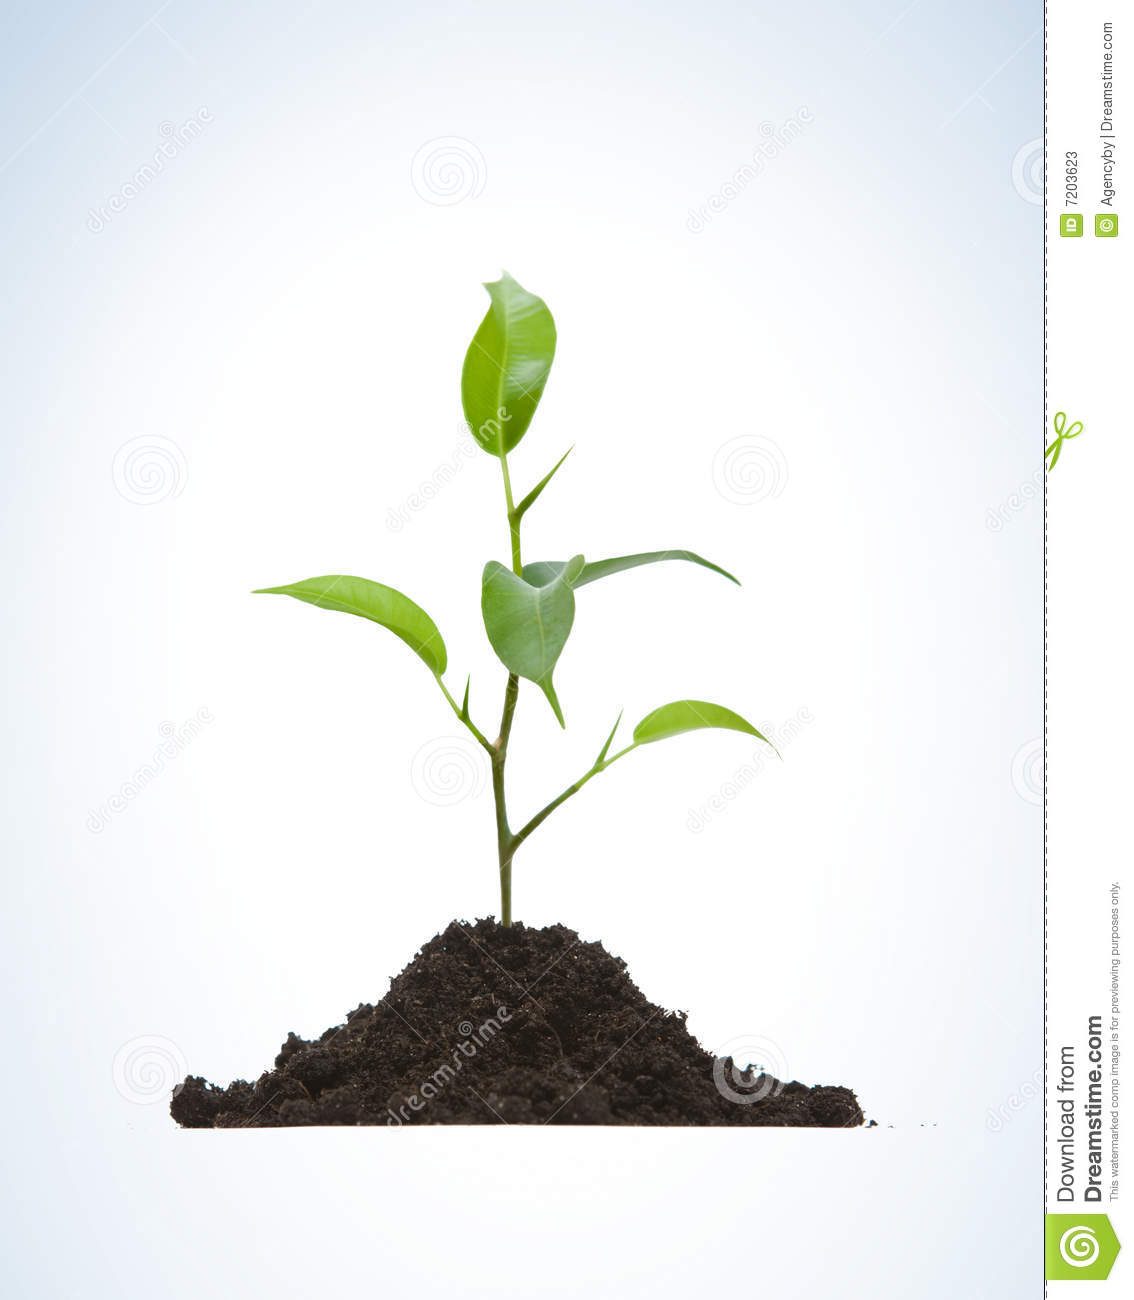 Cultivation Of A Young Plant Stock Photos.